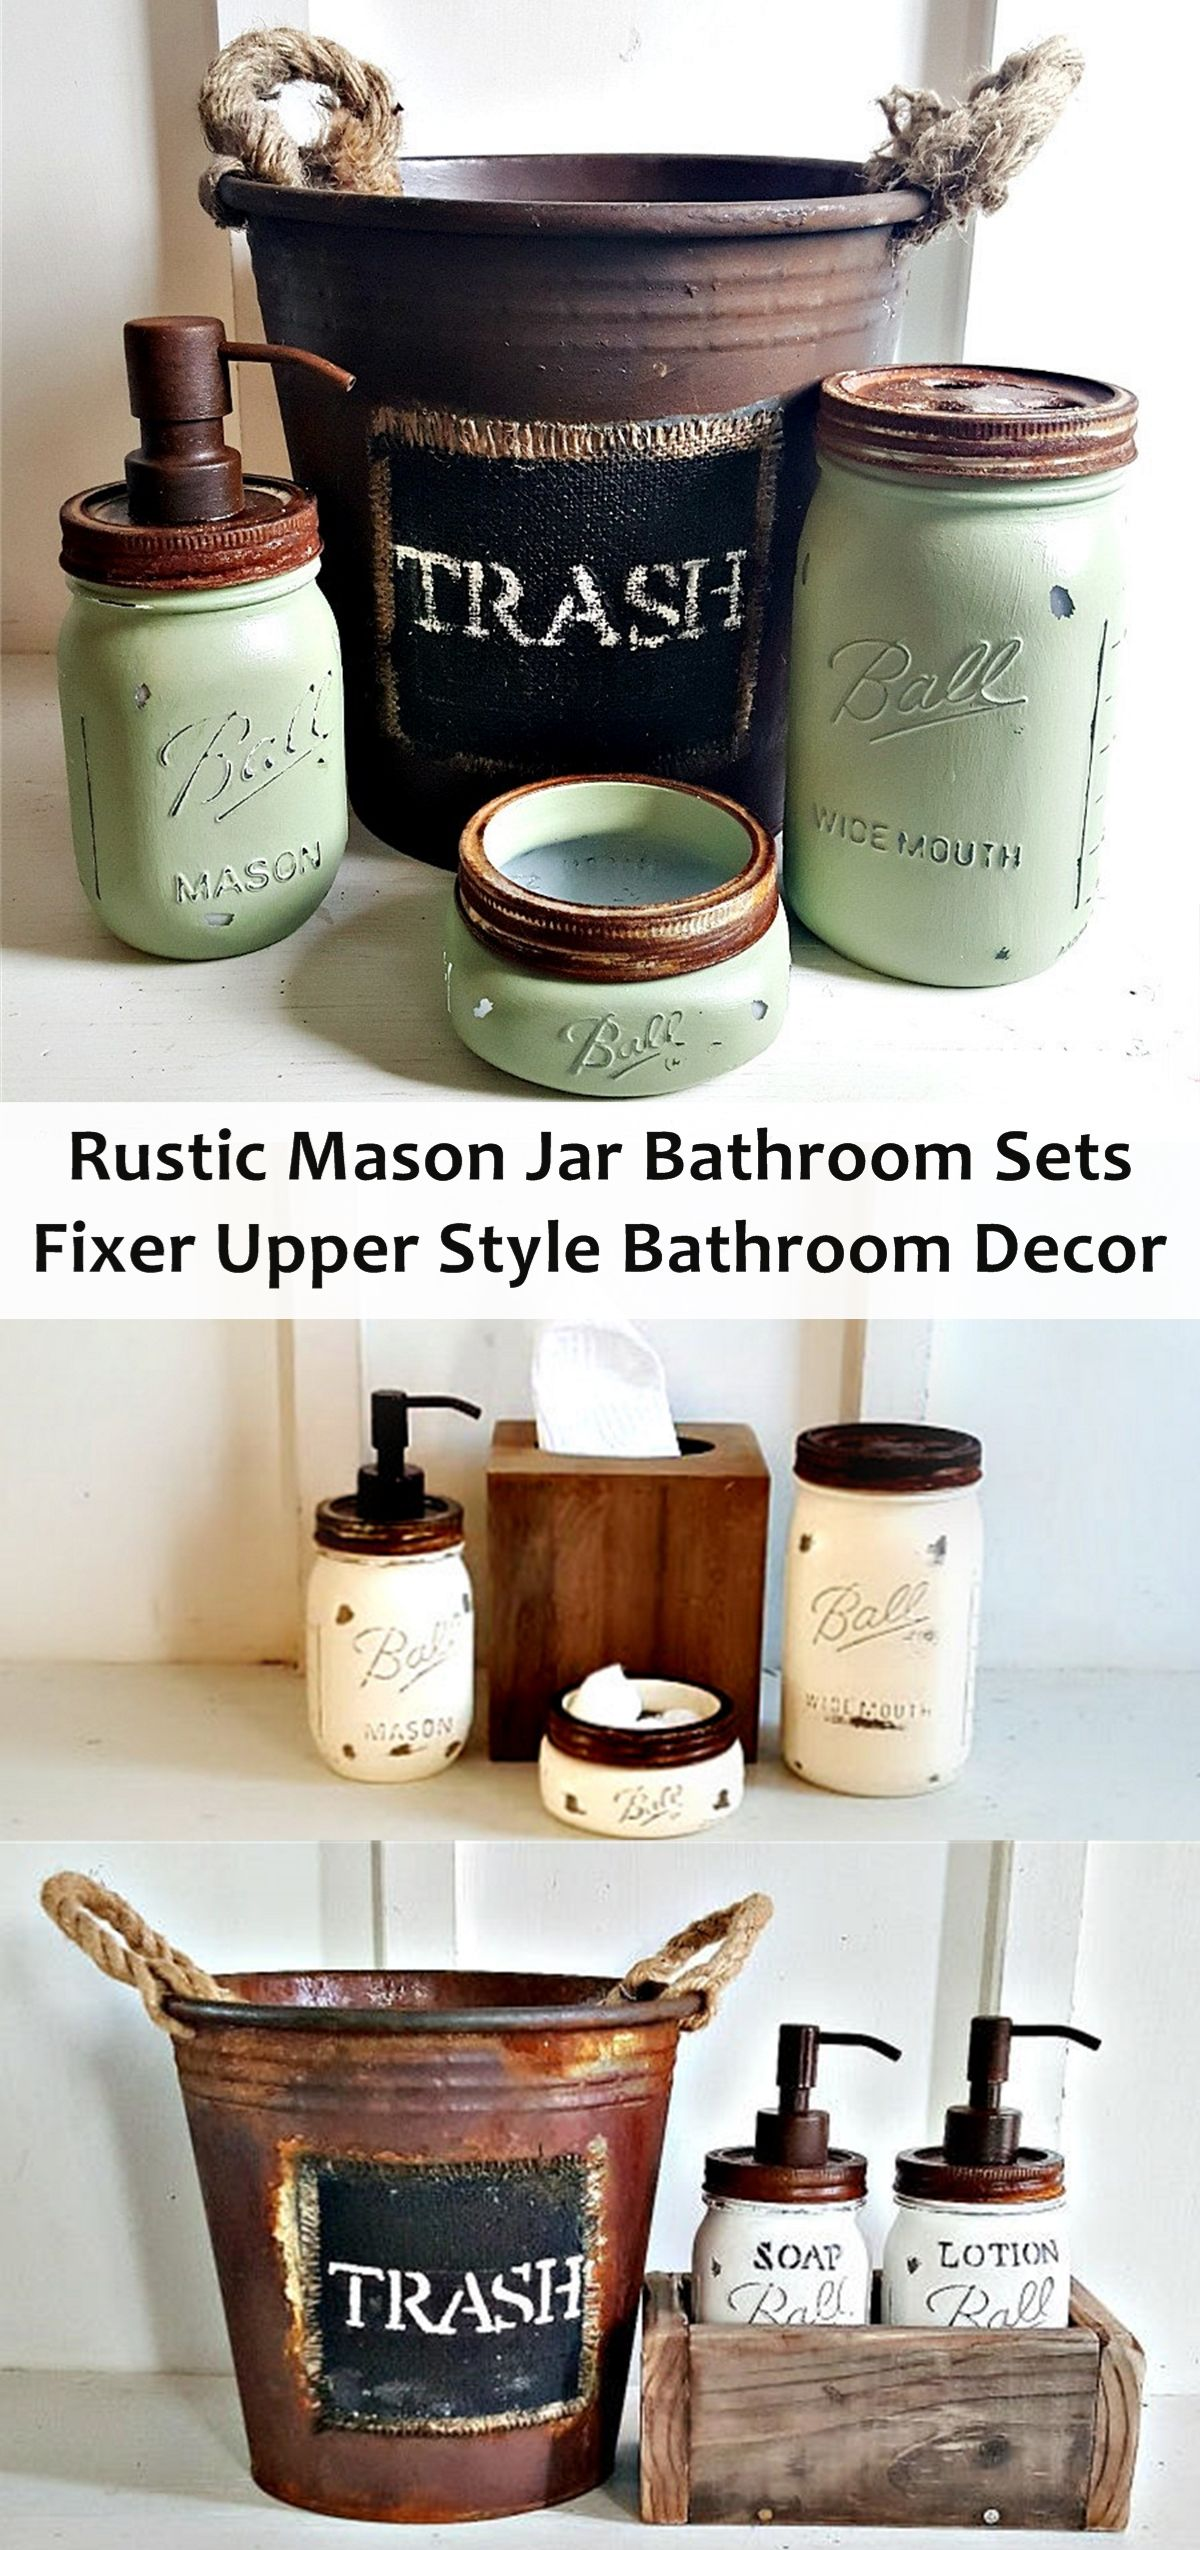 Rustic Bathroom Accessories Sets Get The Fixer Upper Look In Your Bathroom With A Rustic Mason Jar